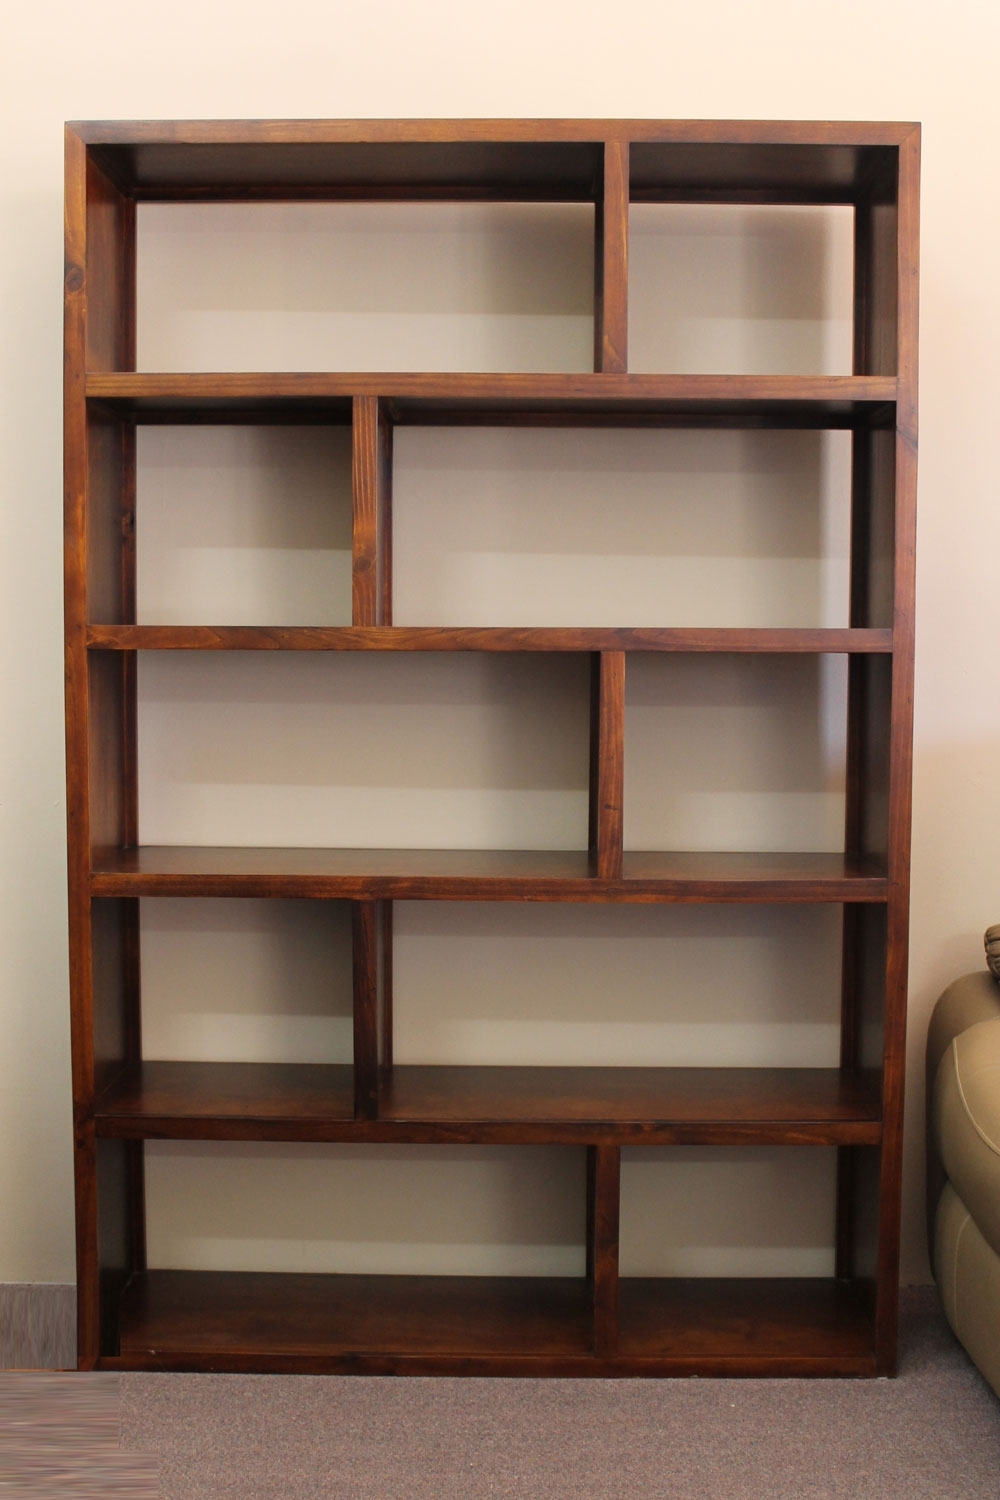 Most Recent Cube 6X4 Bookcase – Hardings Furniture With Regard To Cube Bookcases (View 11 of 15)